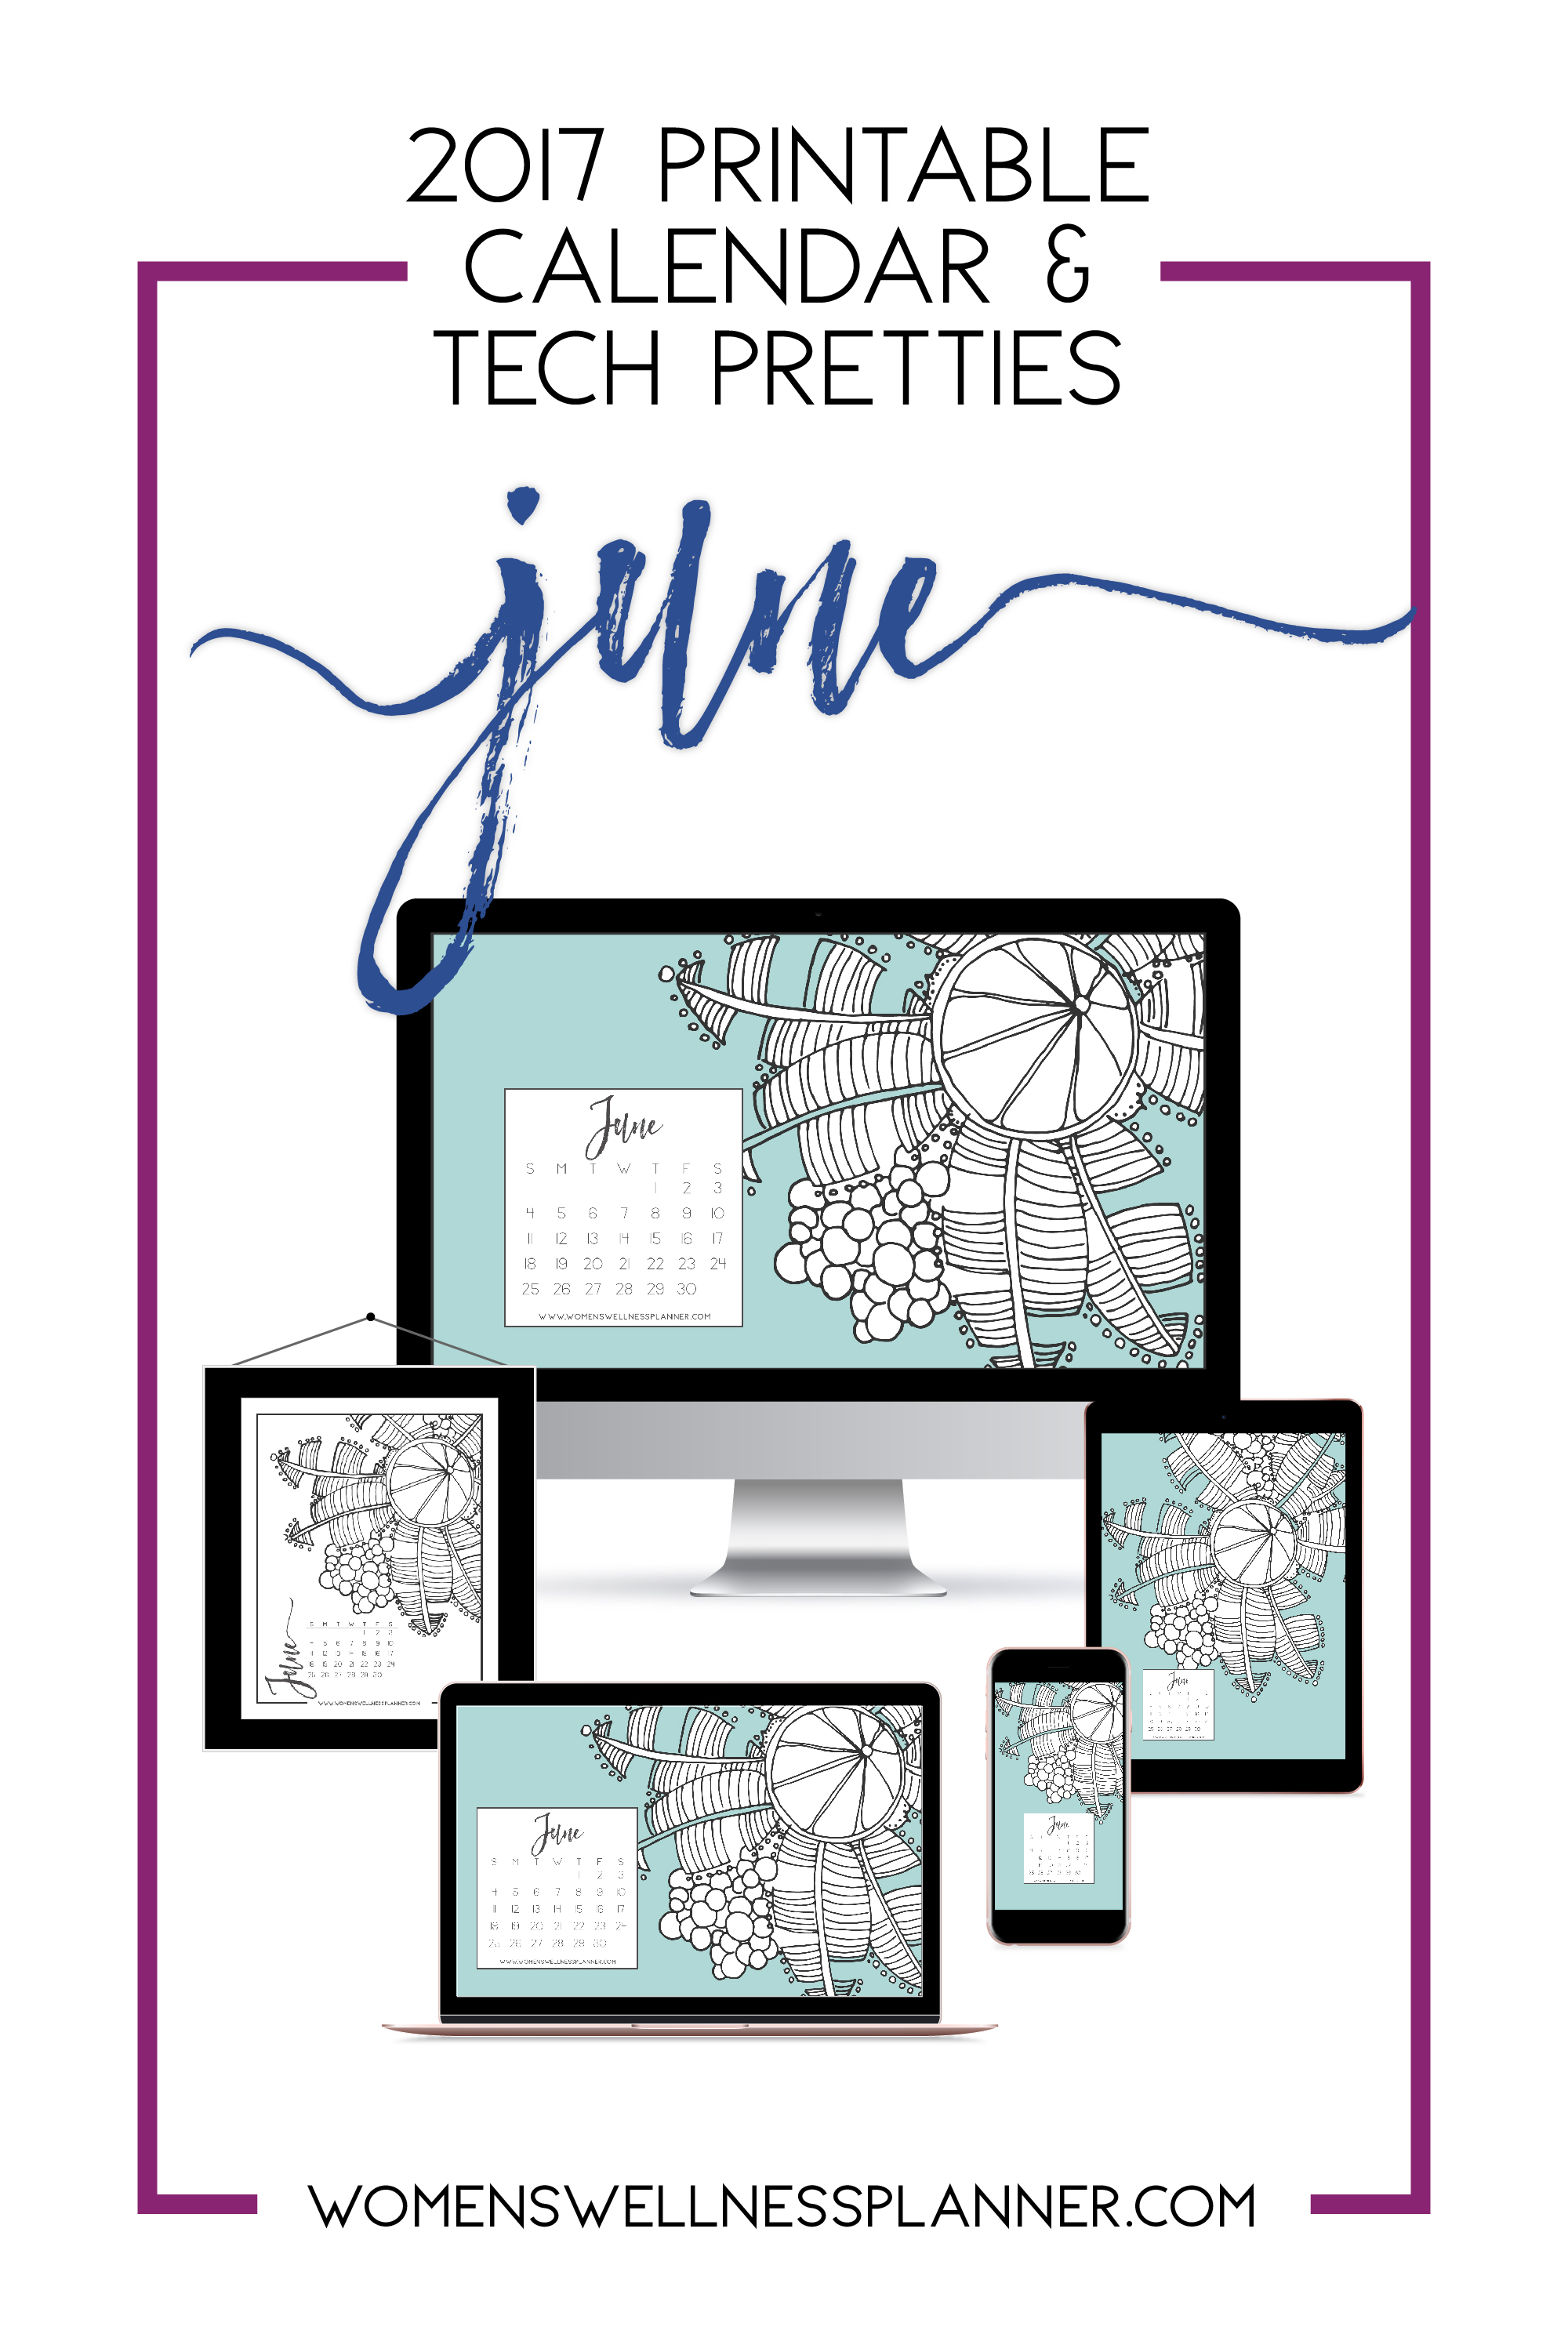 June 2017 Printable Calendar & Tech Pretties | WomensWellnessPlanner.com